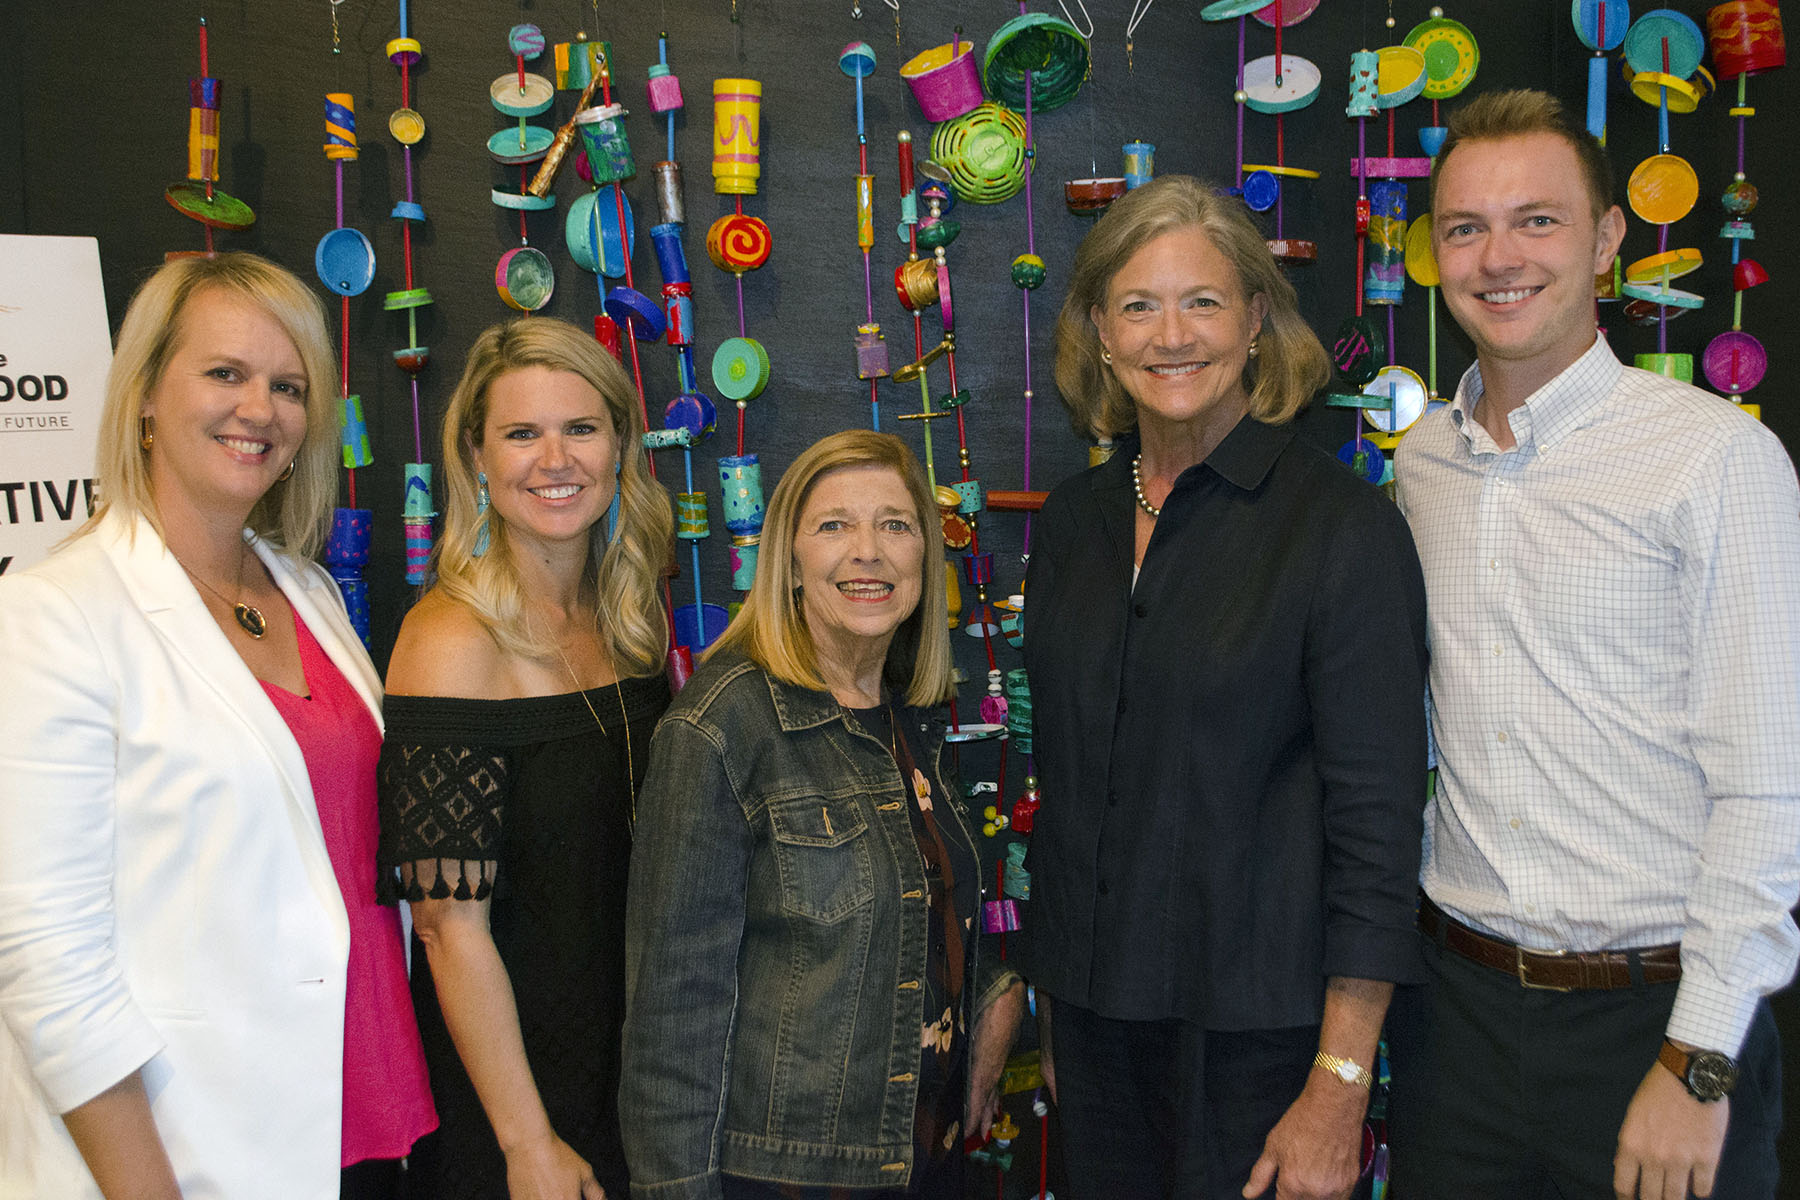 Night in the Neighborhood Fundraiser celebrates growth, expansion of Completely KIDS℠